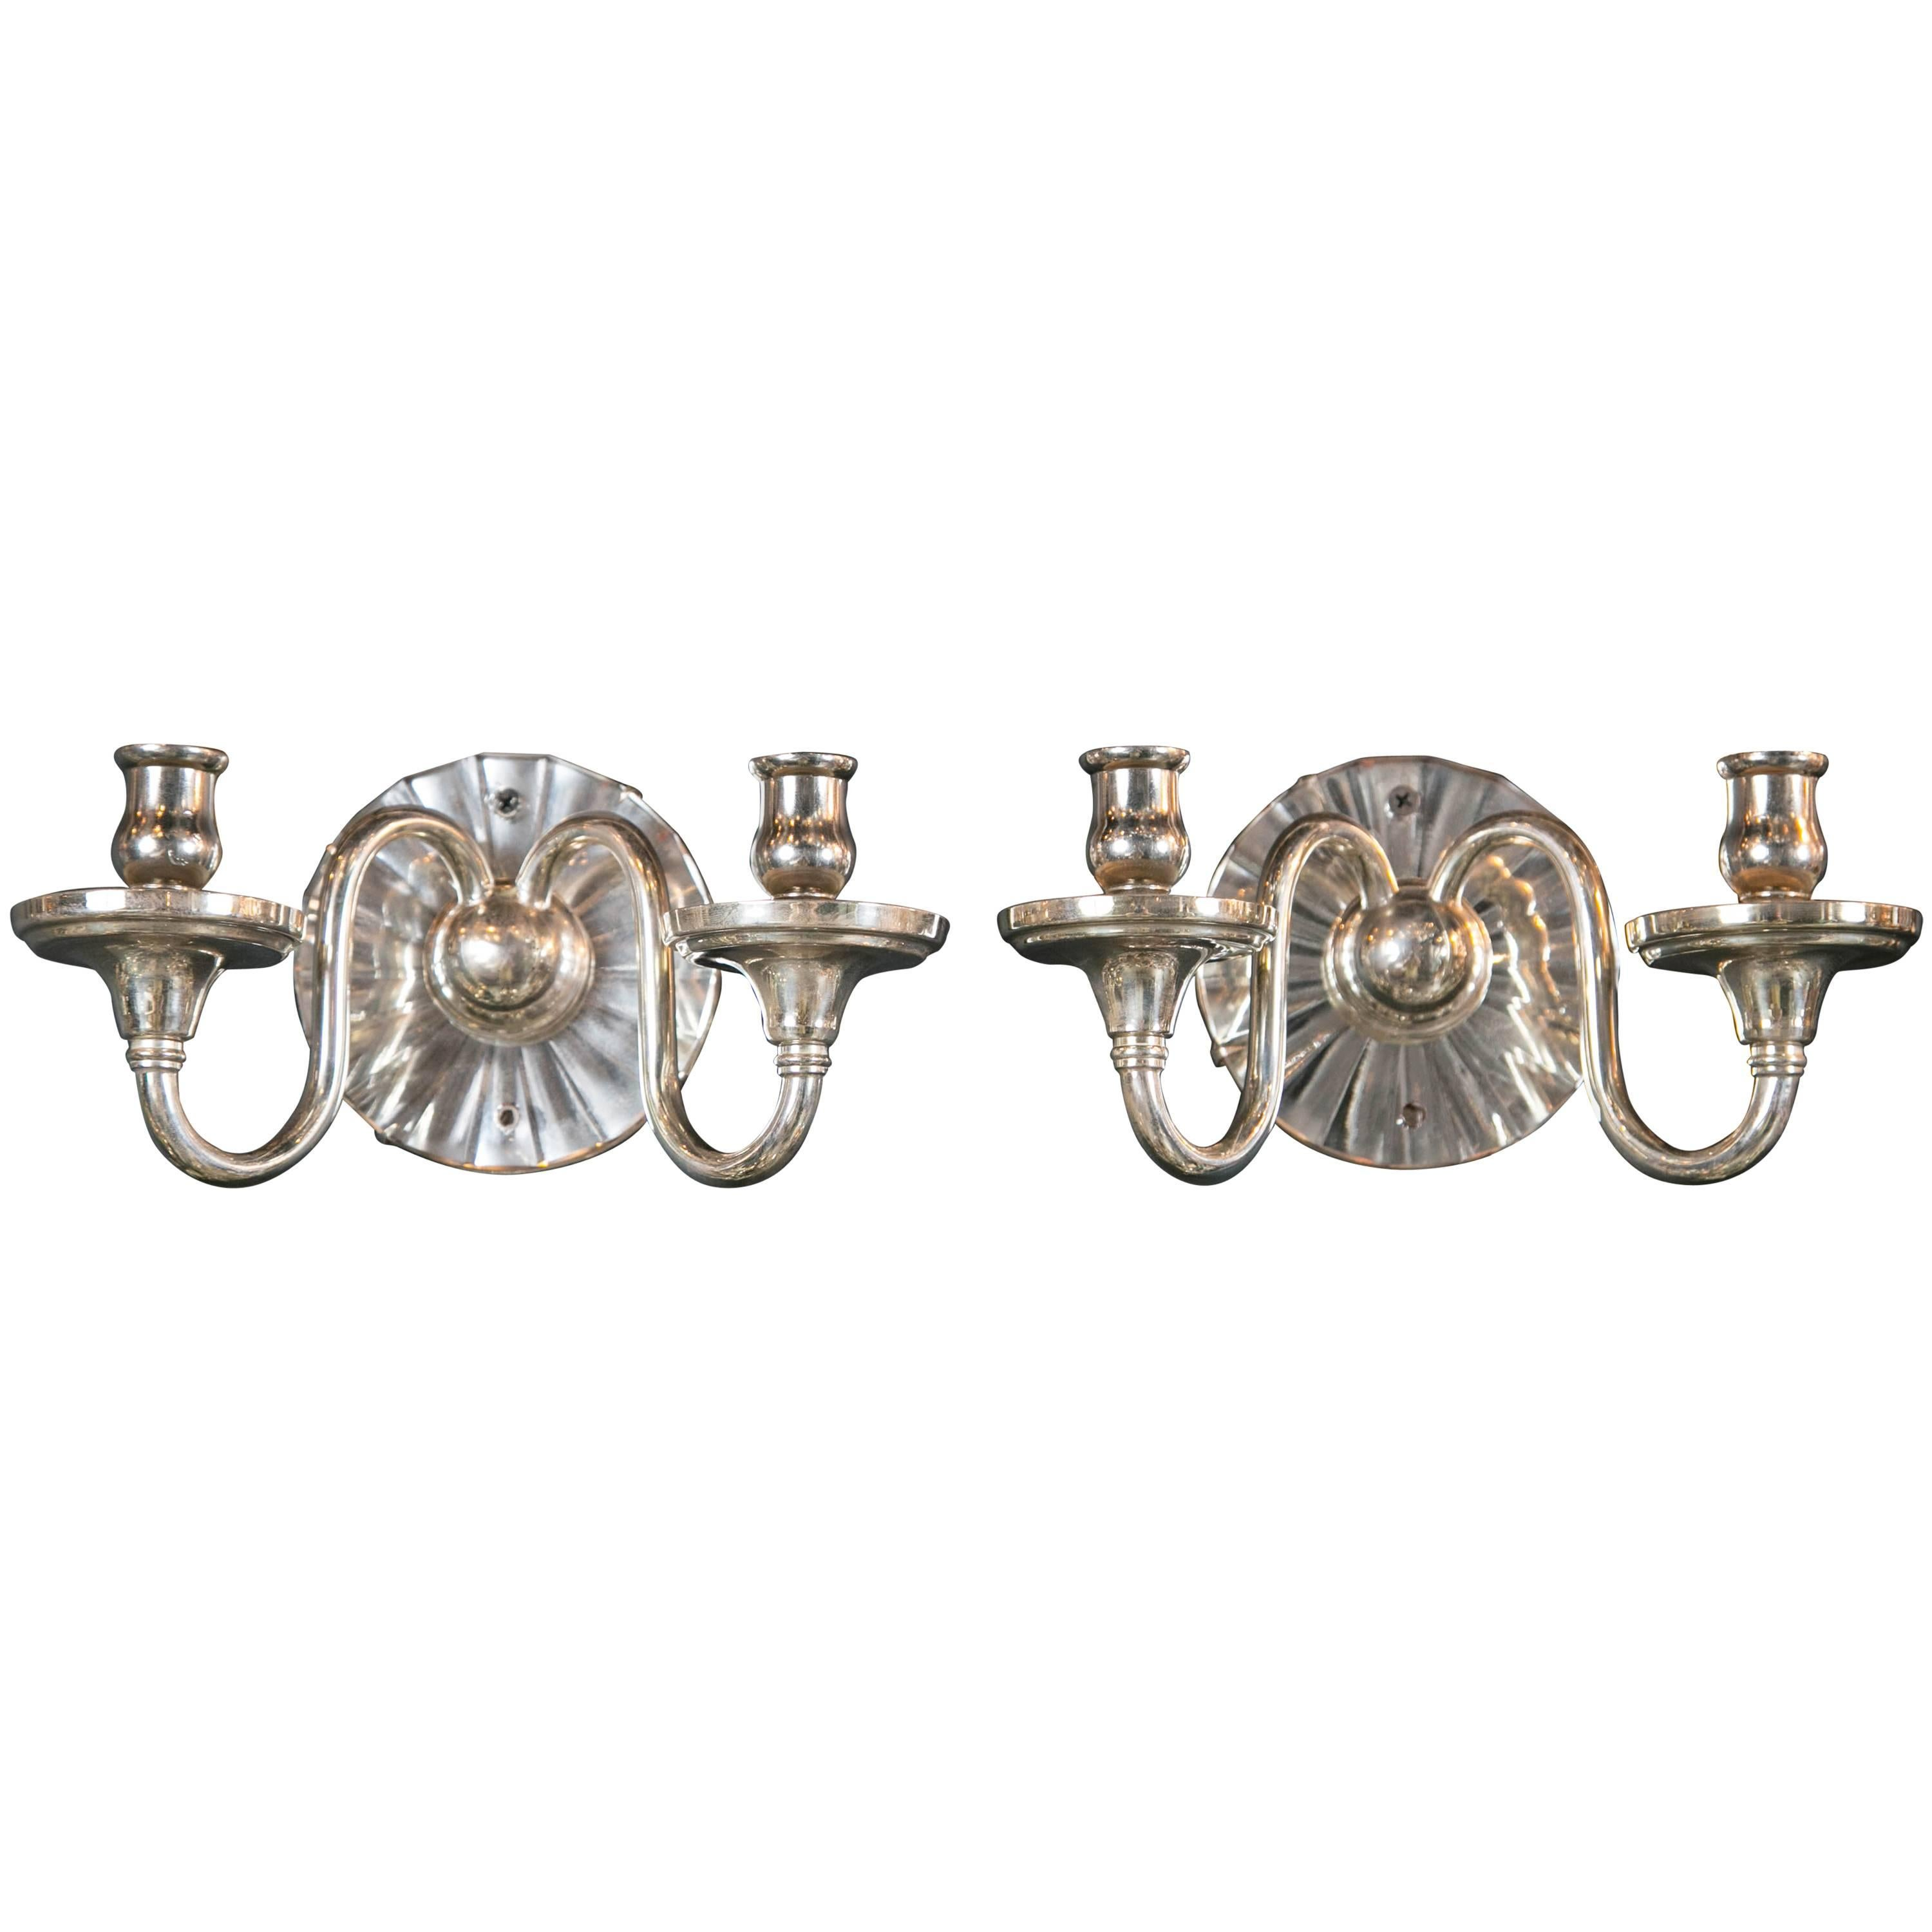 Pair Of Italian Two Light Sconces With Perforated Shades And Mirror